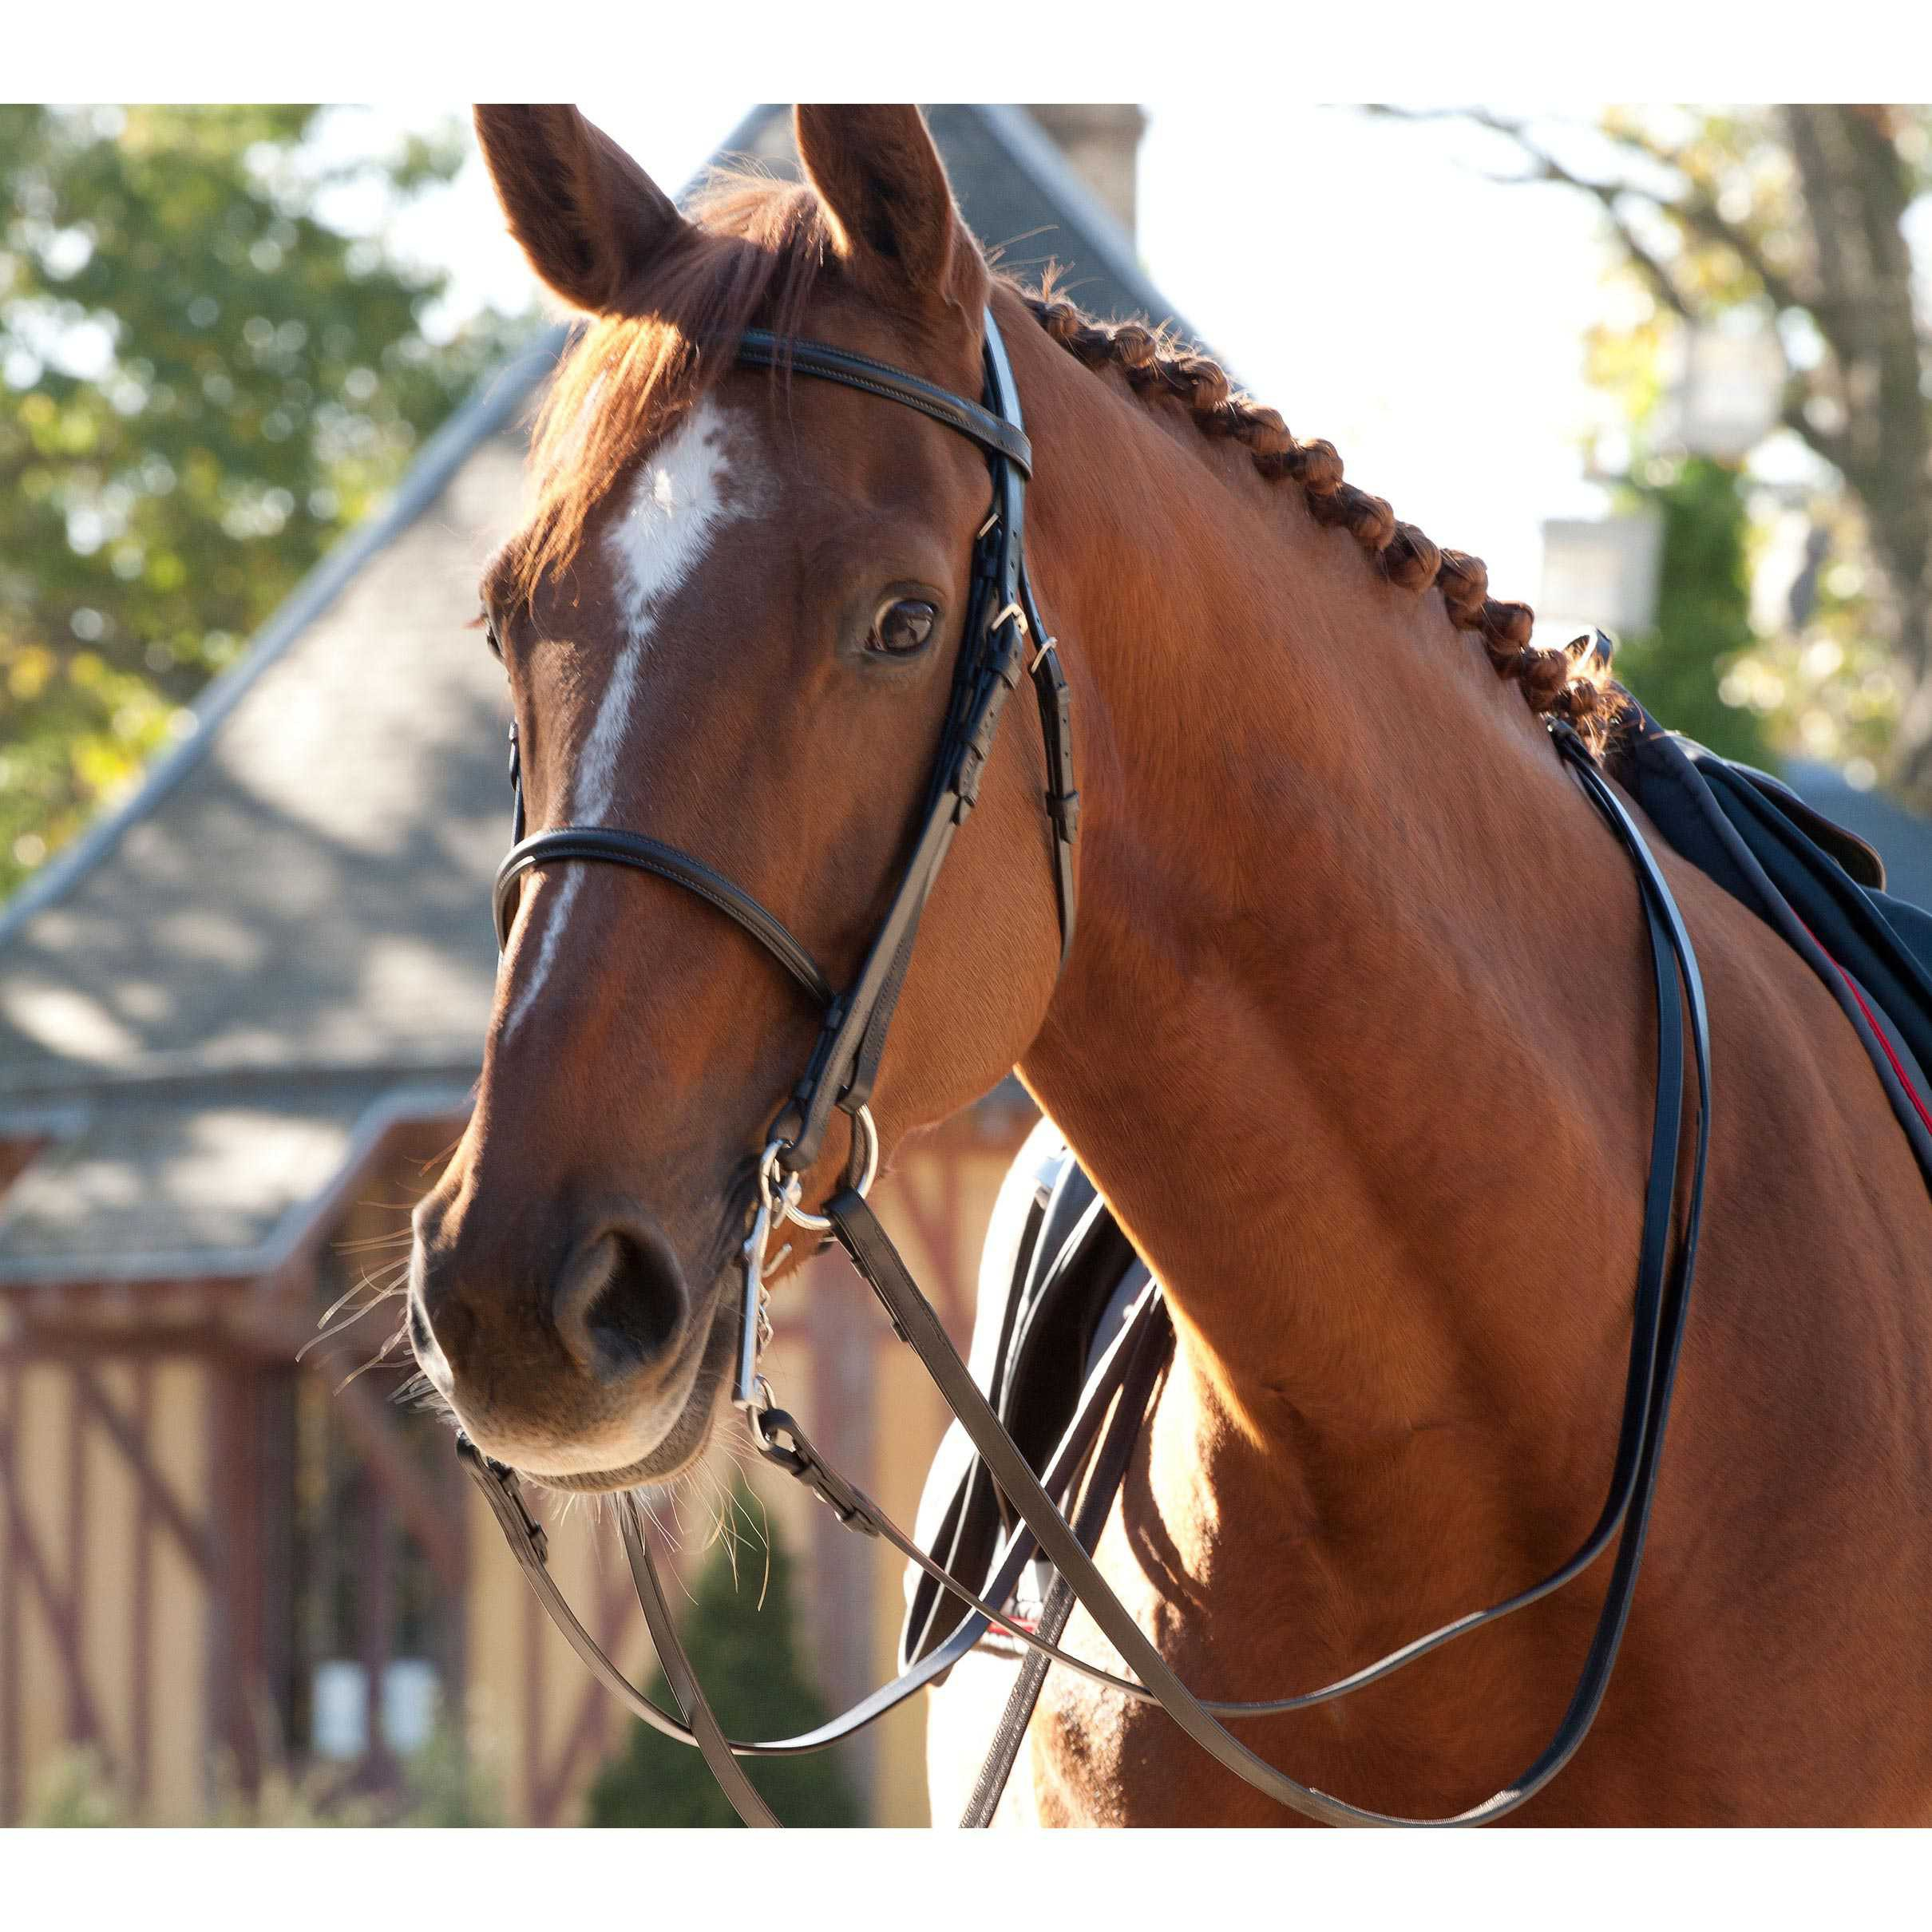 Guibert Paris - All leather bridle